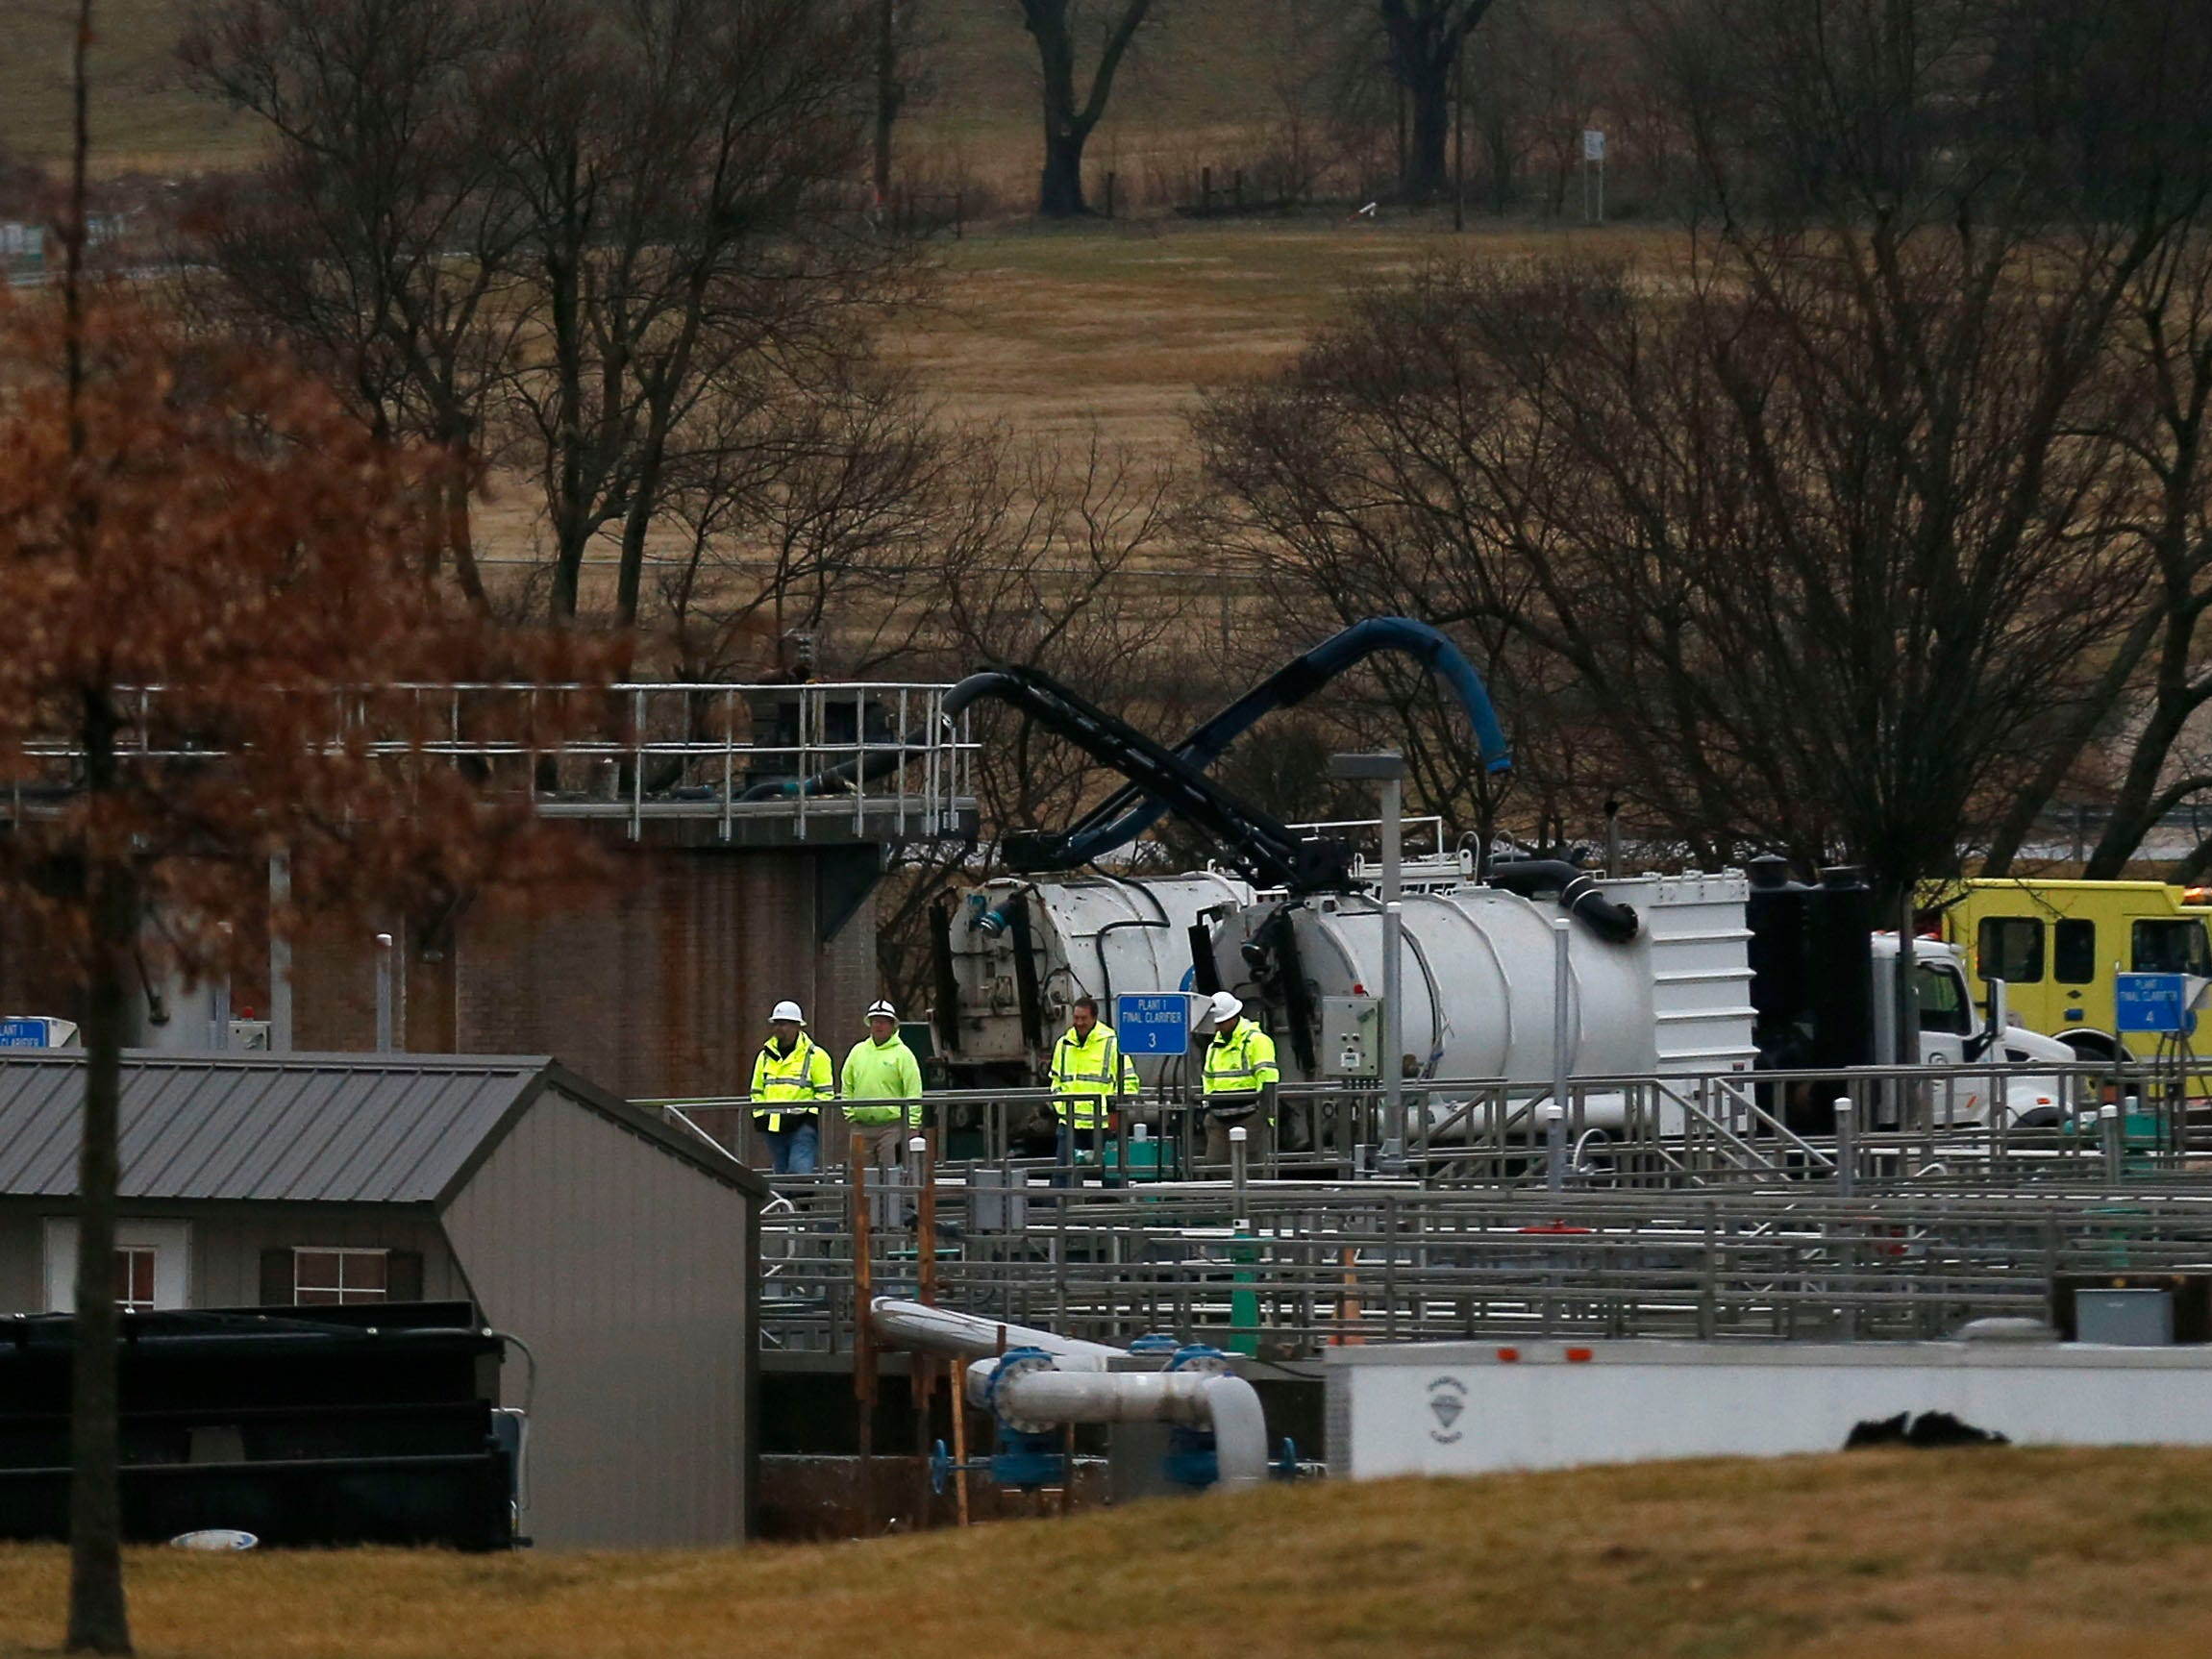 Springfield Fire Department officials say two people were injured Monday after jumping from a collapsing roof to escape a methane burst at the Springfield Wastewater Treatment Facility.